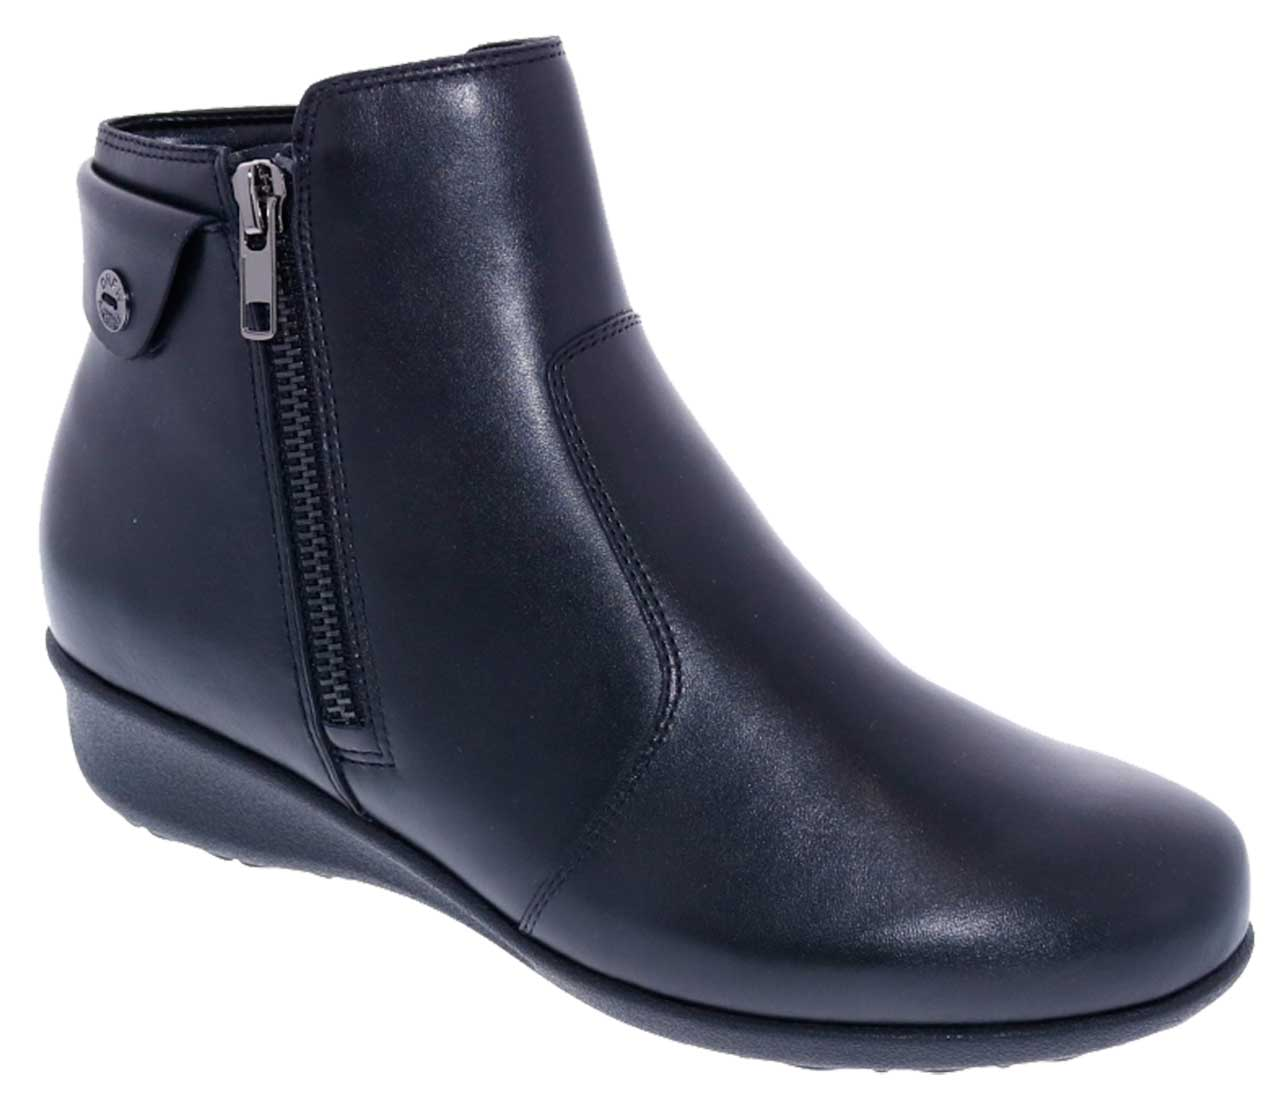 Drew Shoes - Athens - Black Leather - Boot with Zippers